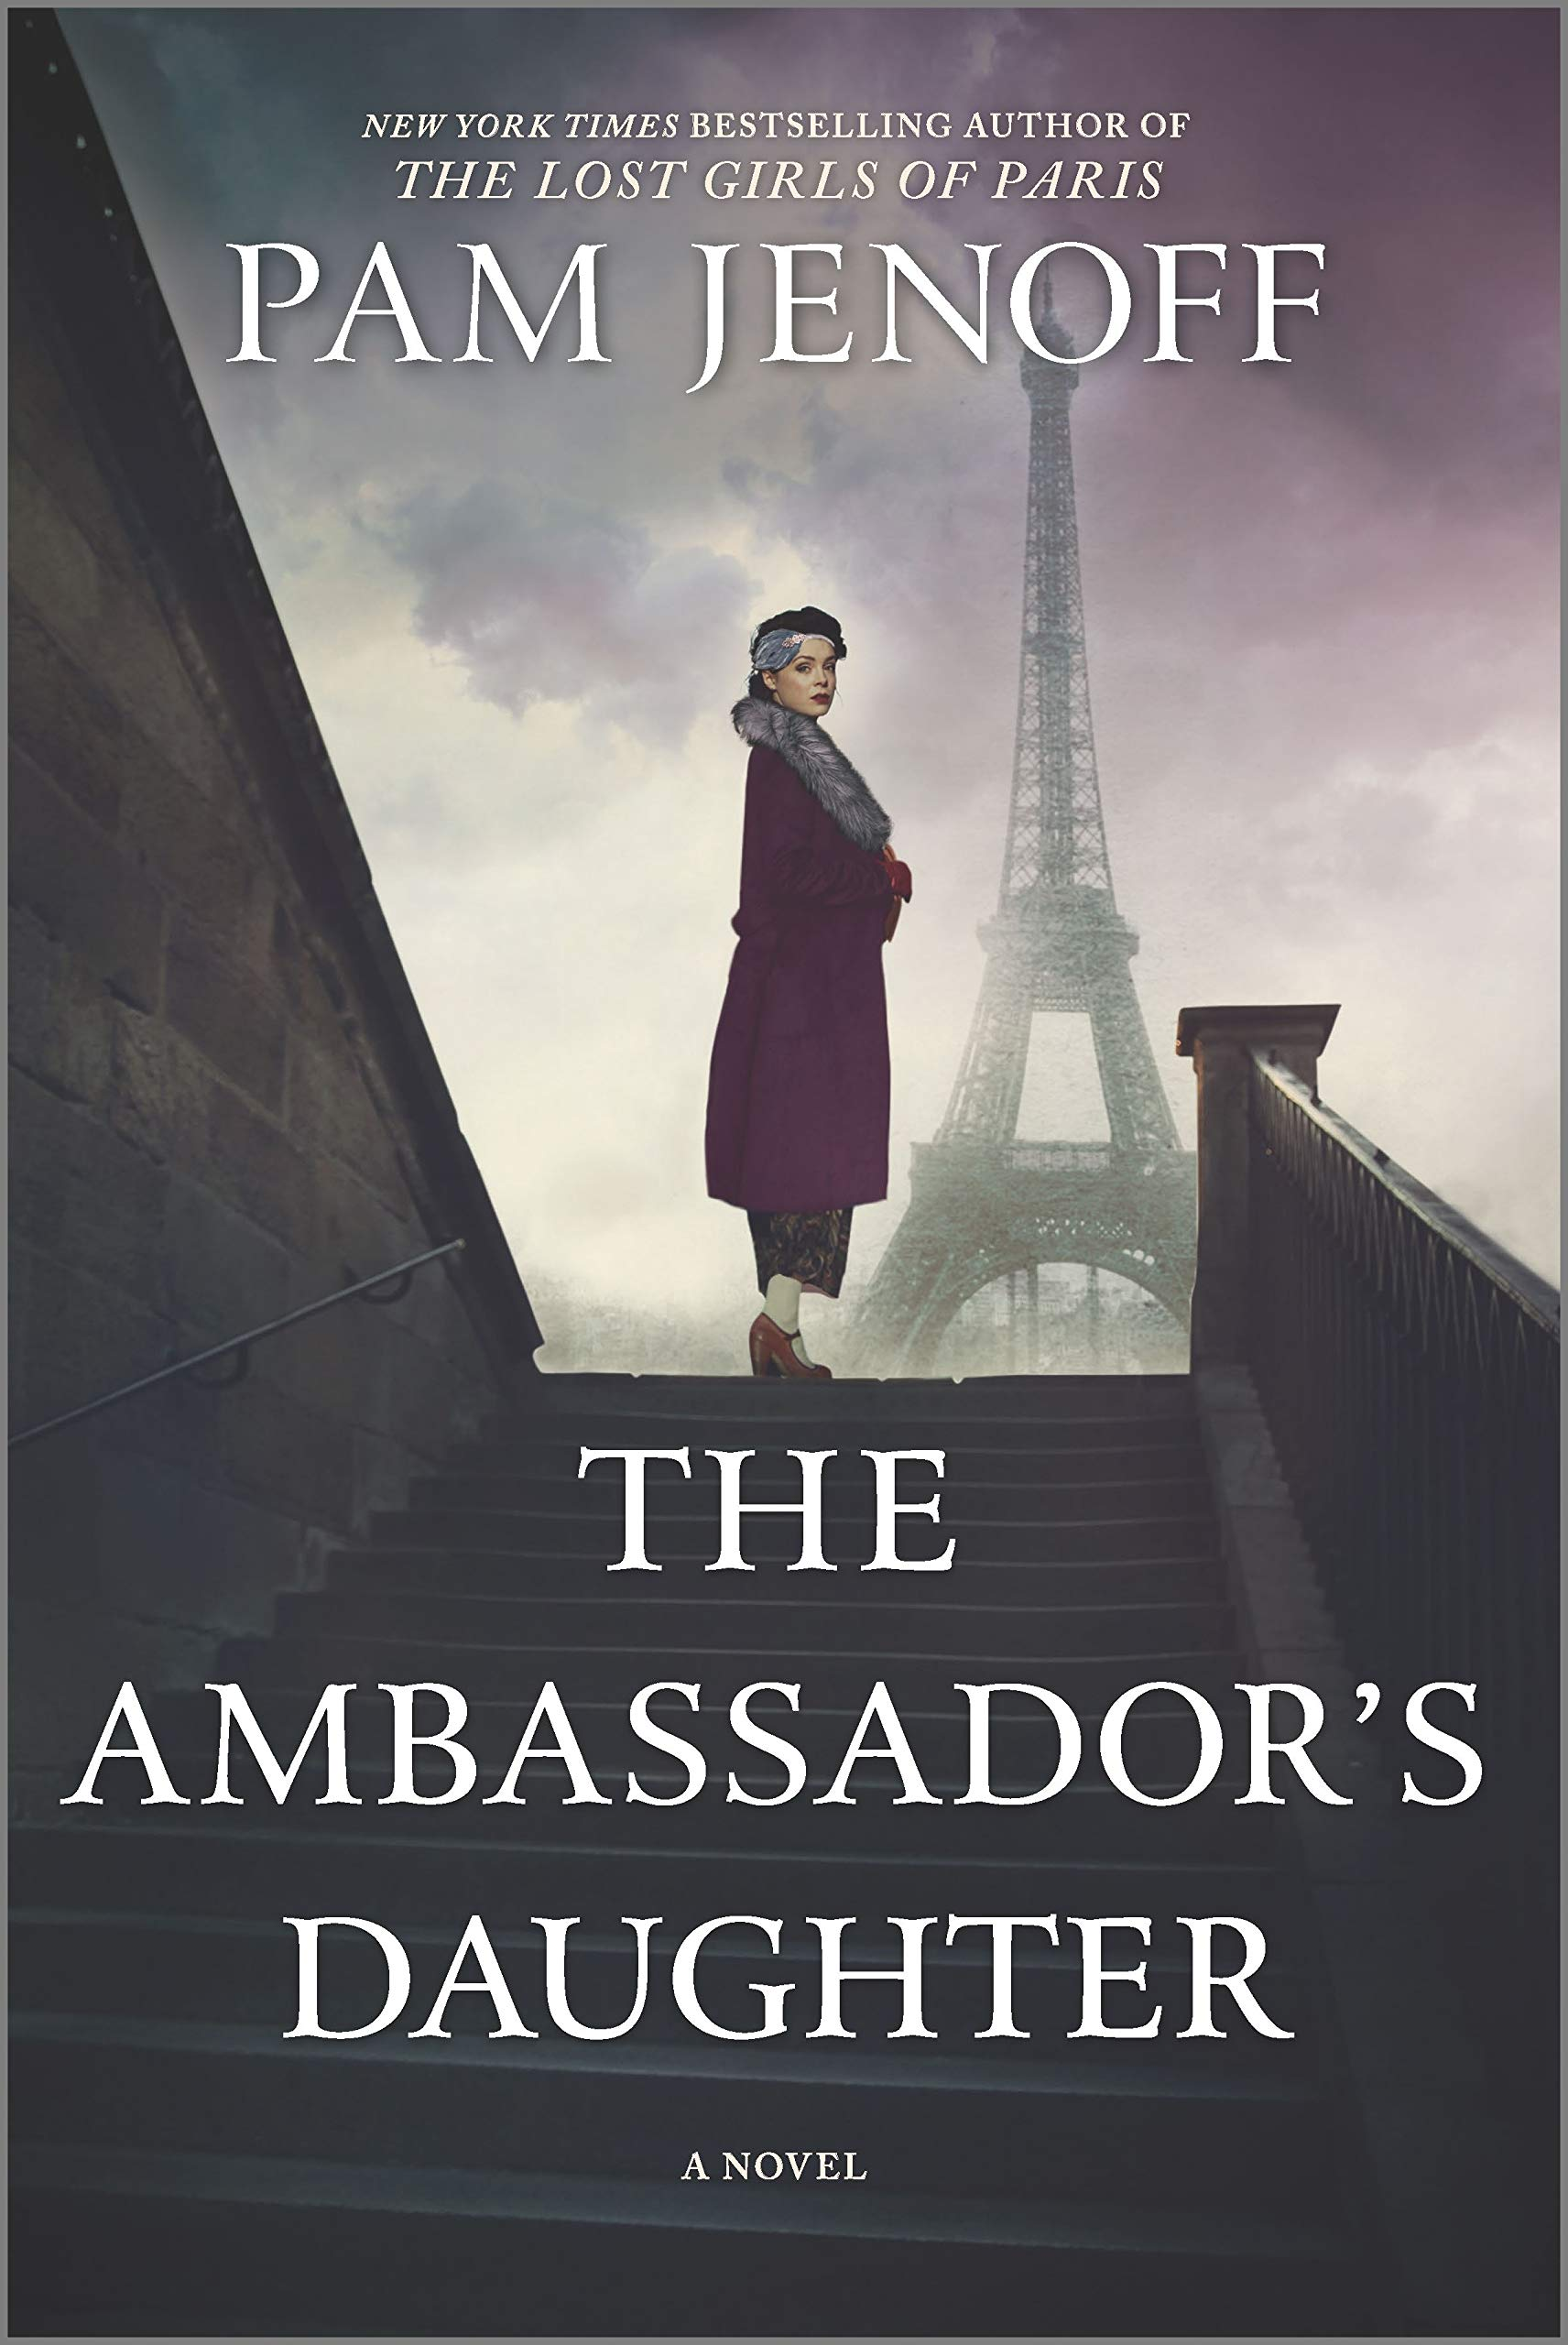 The Ambassador's Daughter: A Novel